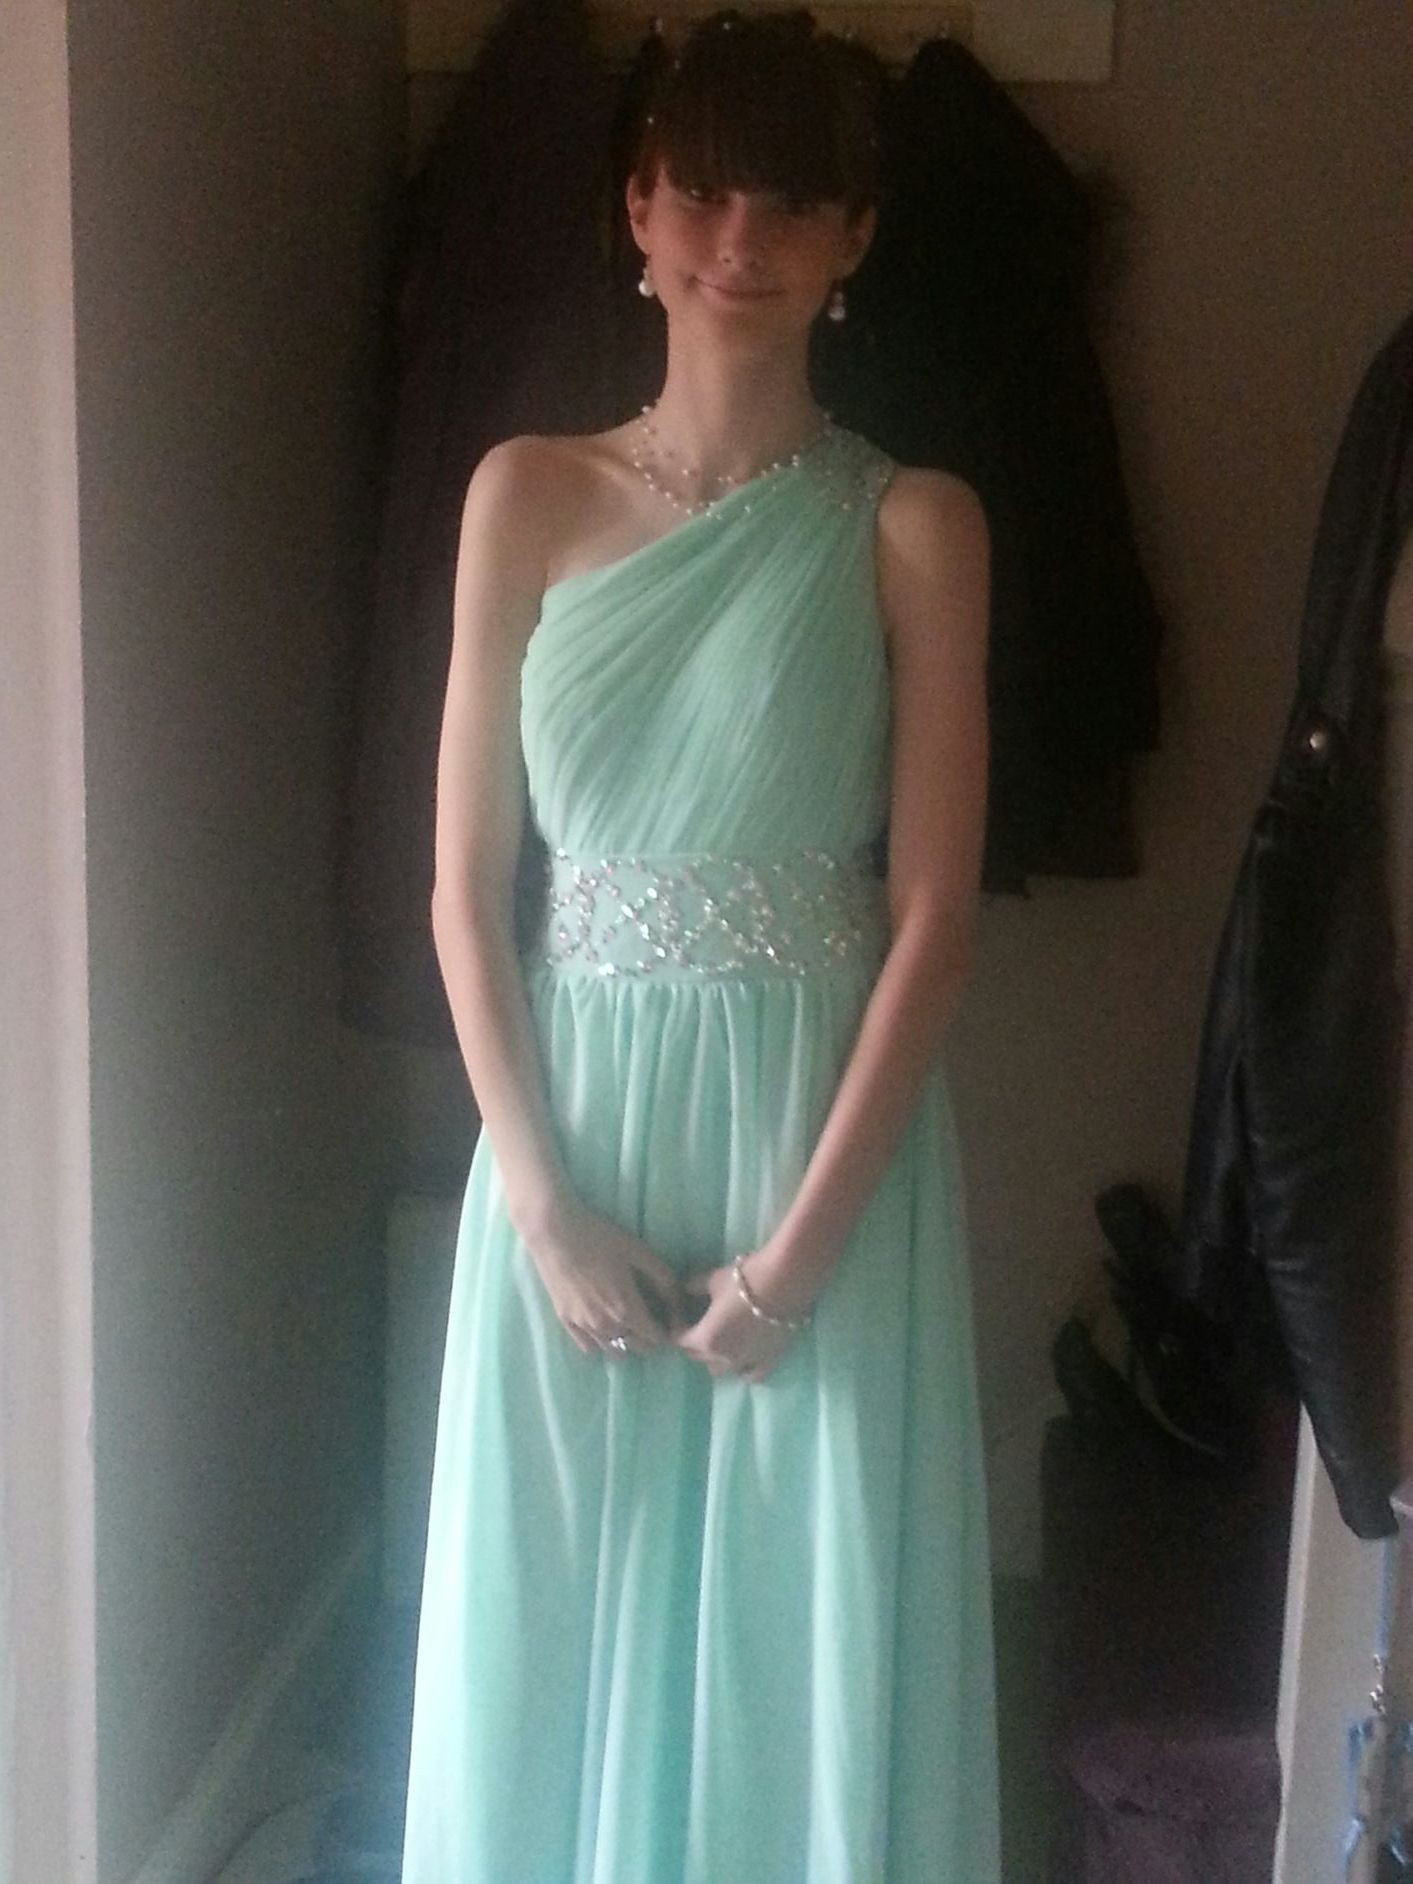 Can't believe how grown up my little girl look . . . Stunning too